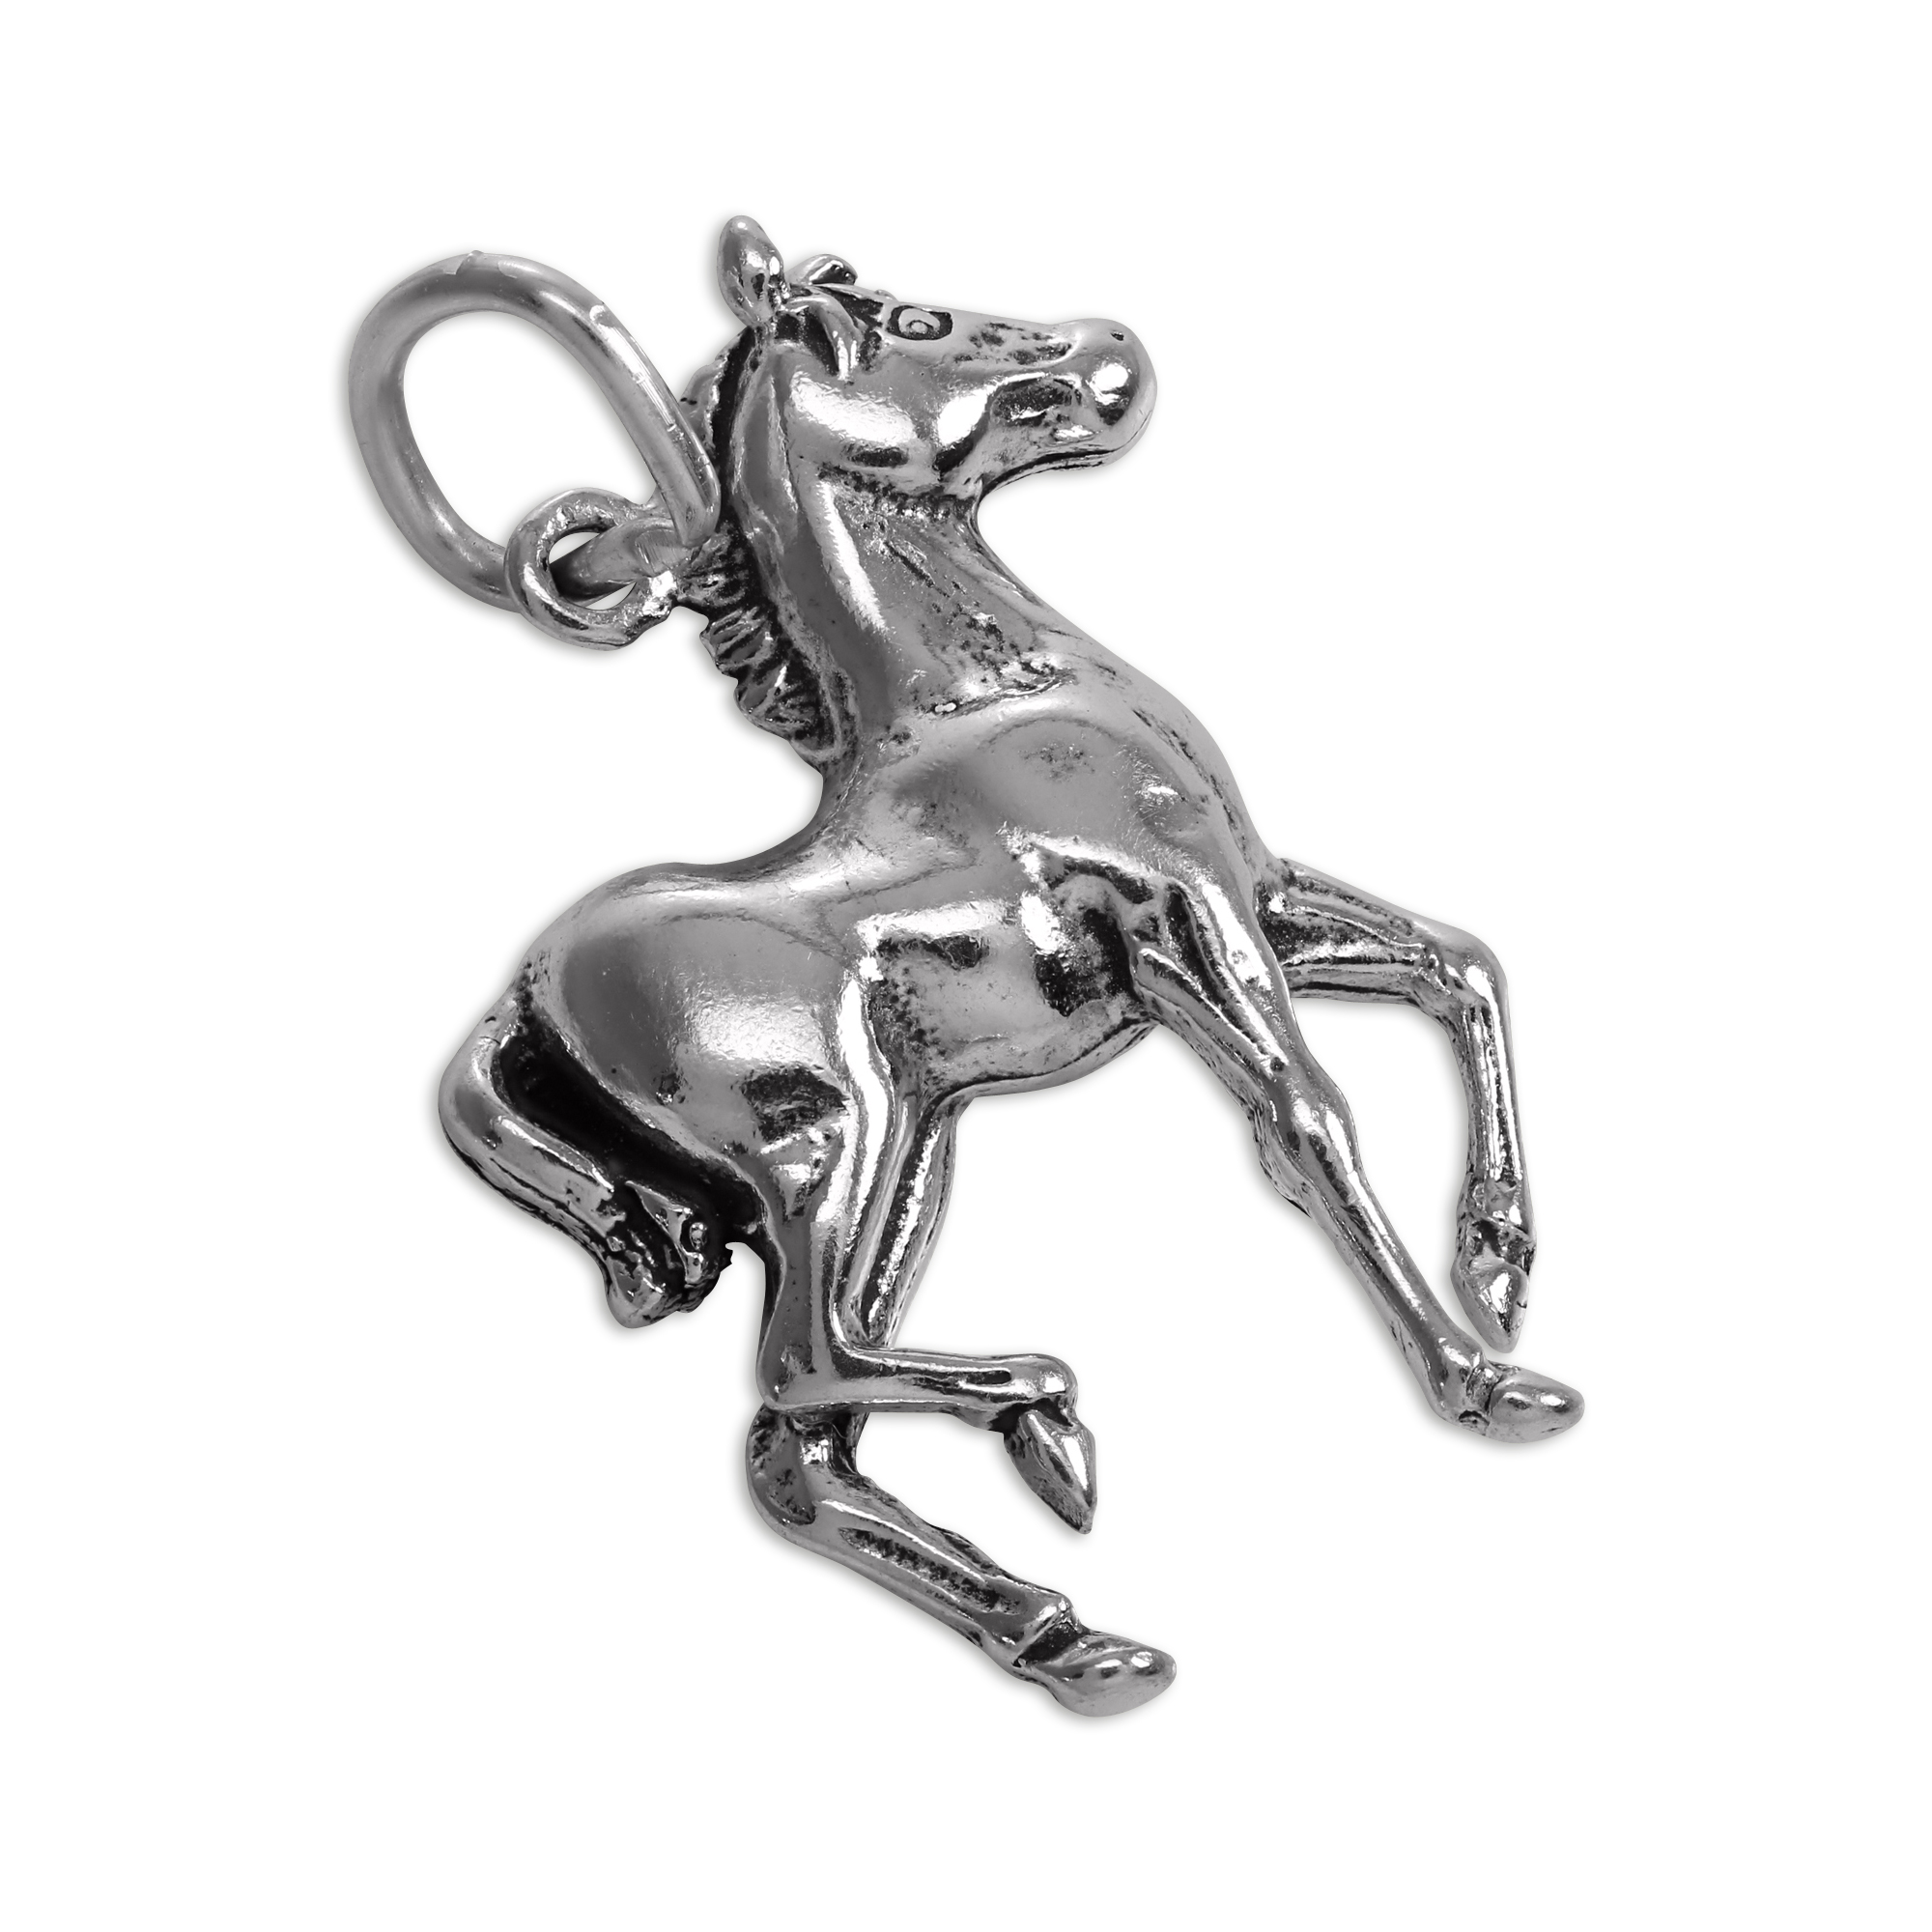 An image of Sterling Silver Pony Charm